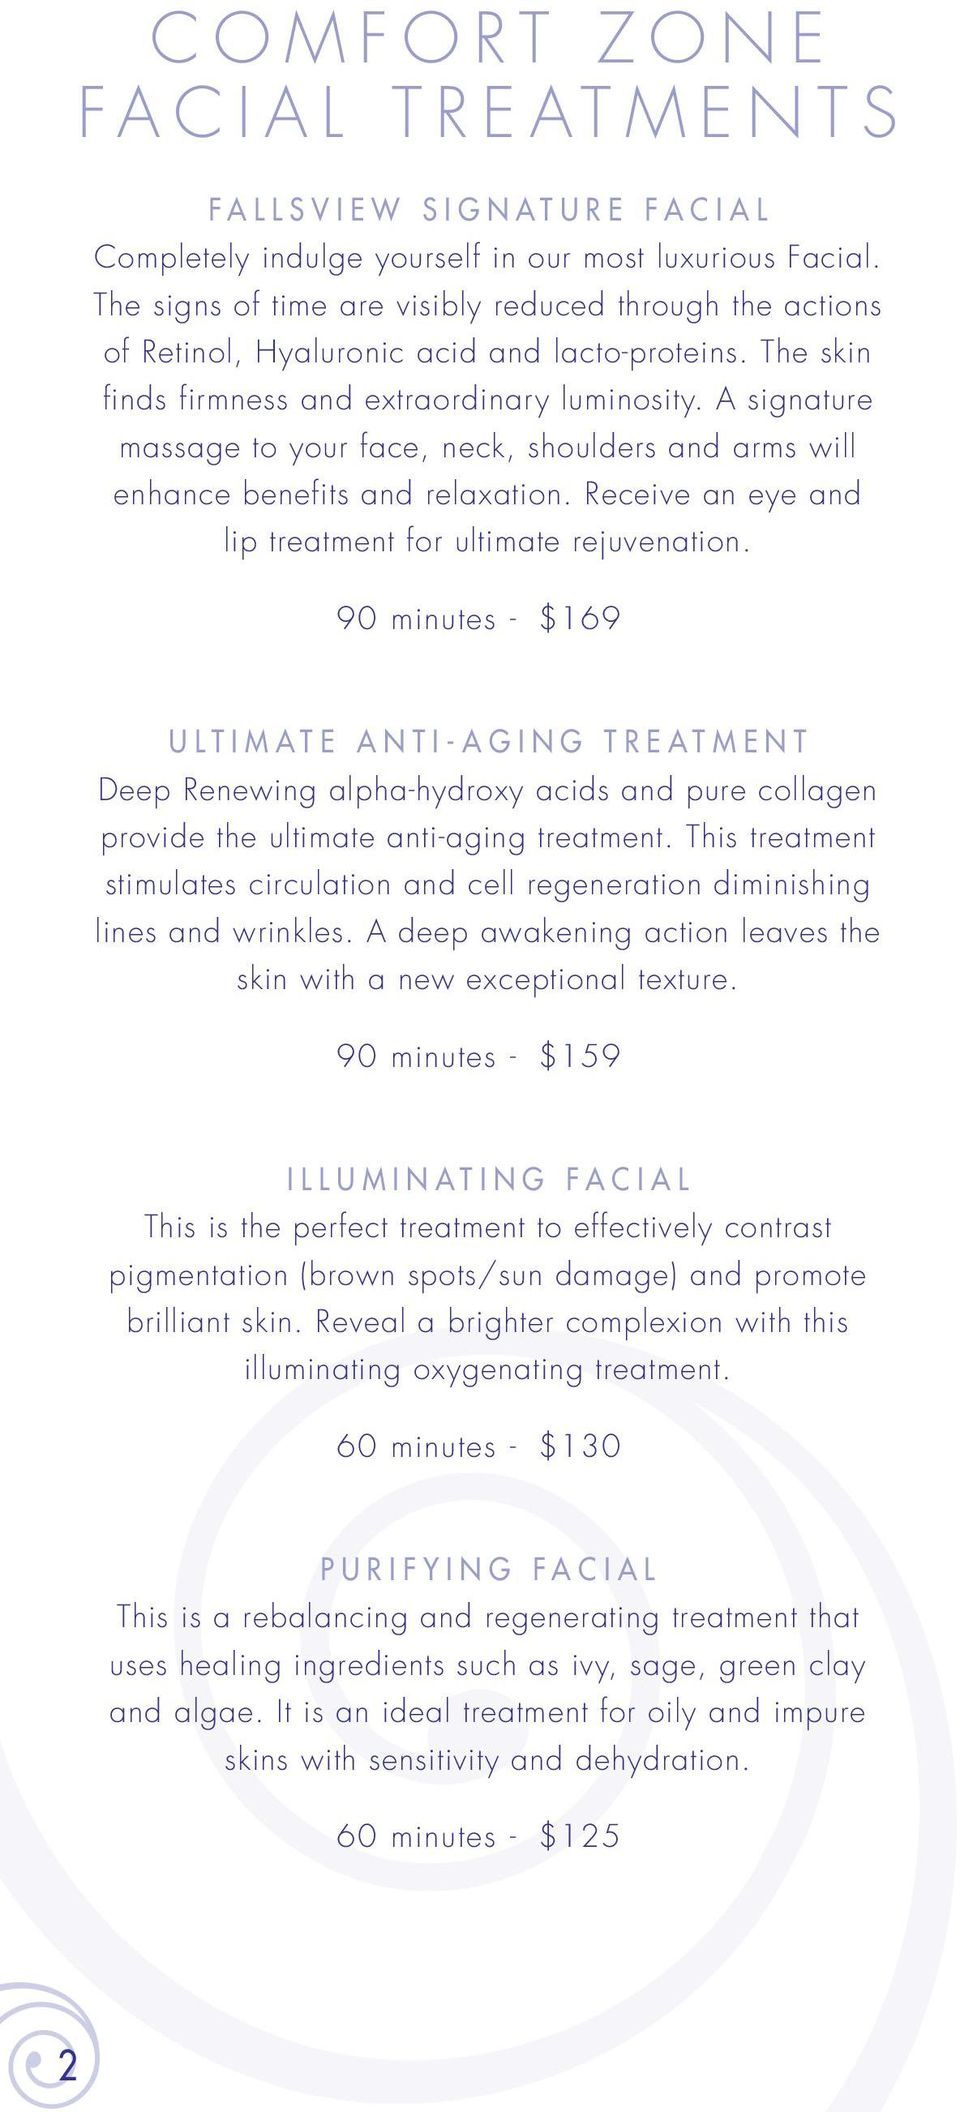 A signature massage to your face, neck, shoulders and arms will enhance benefits and relaxation. Receive an eye and lip treatment for ultimate rejuvenation.